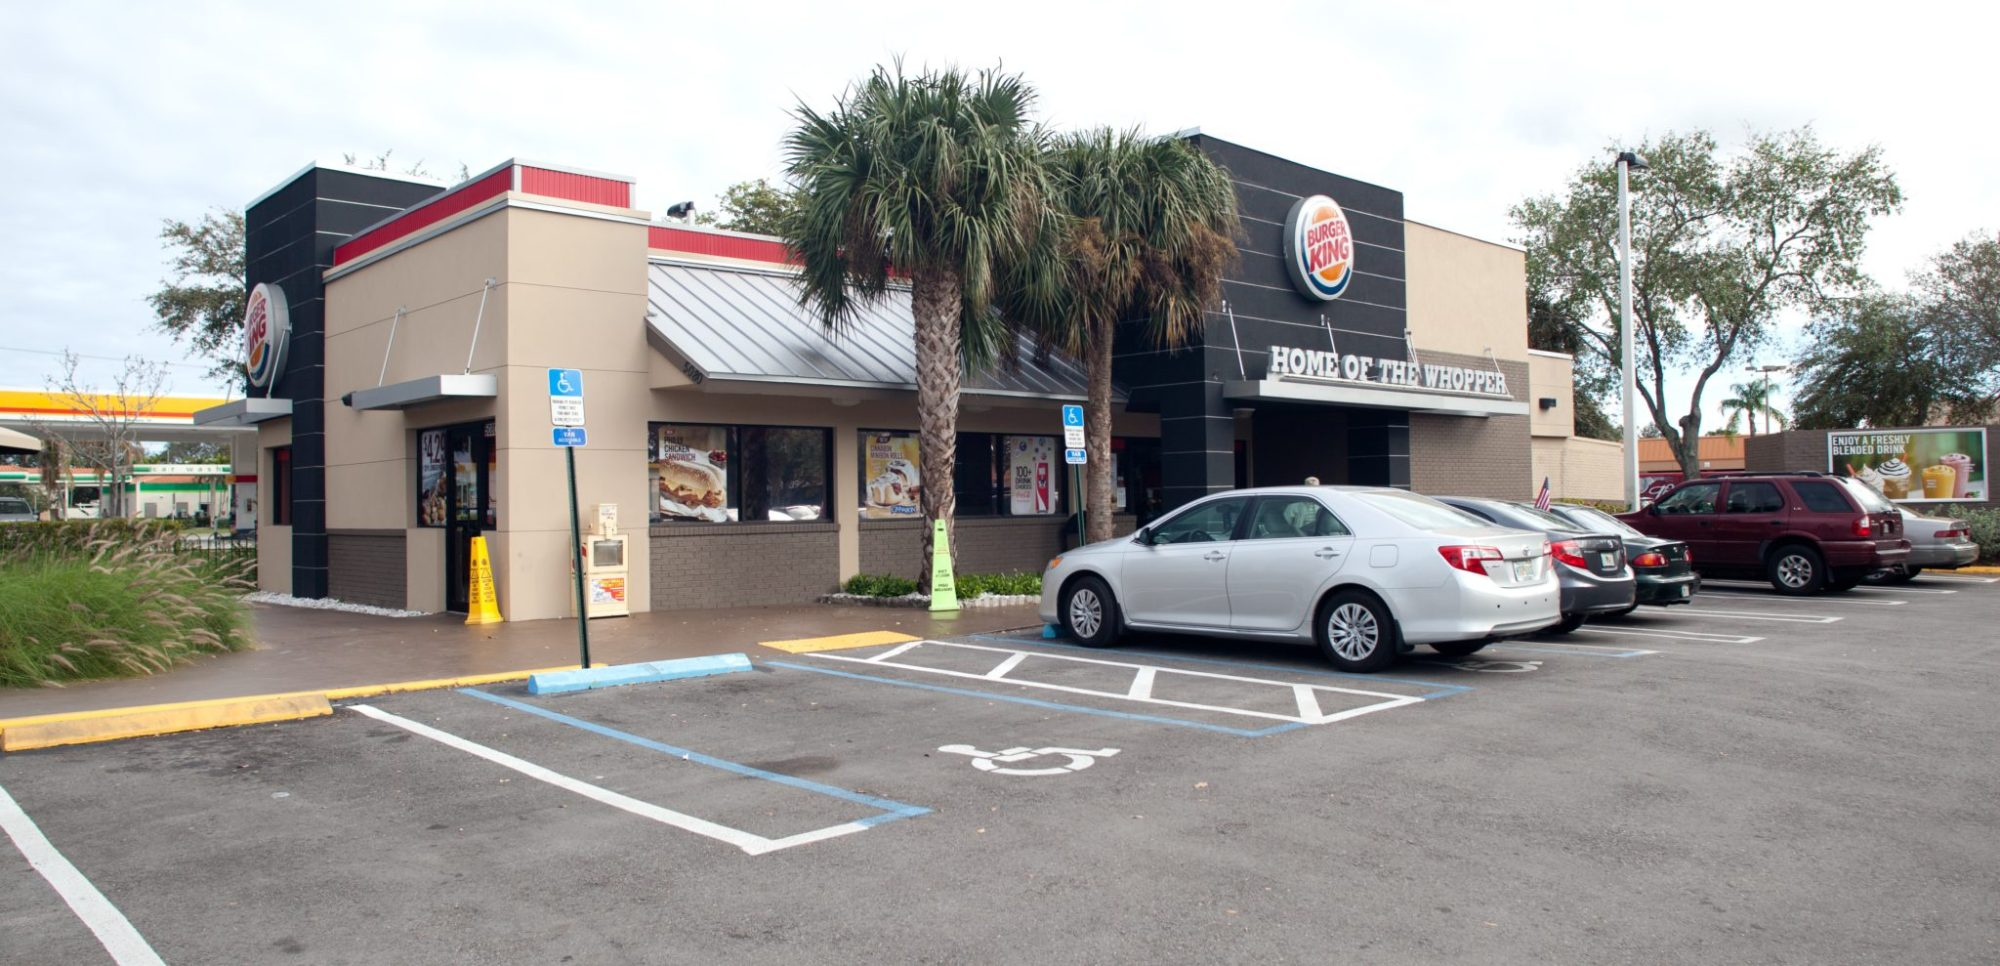 Jan. 16th, 2013 - Delray Beach, Florida: The Delray Commons Shopping Center owned by PEBB Enterprises.